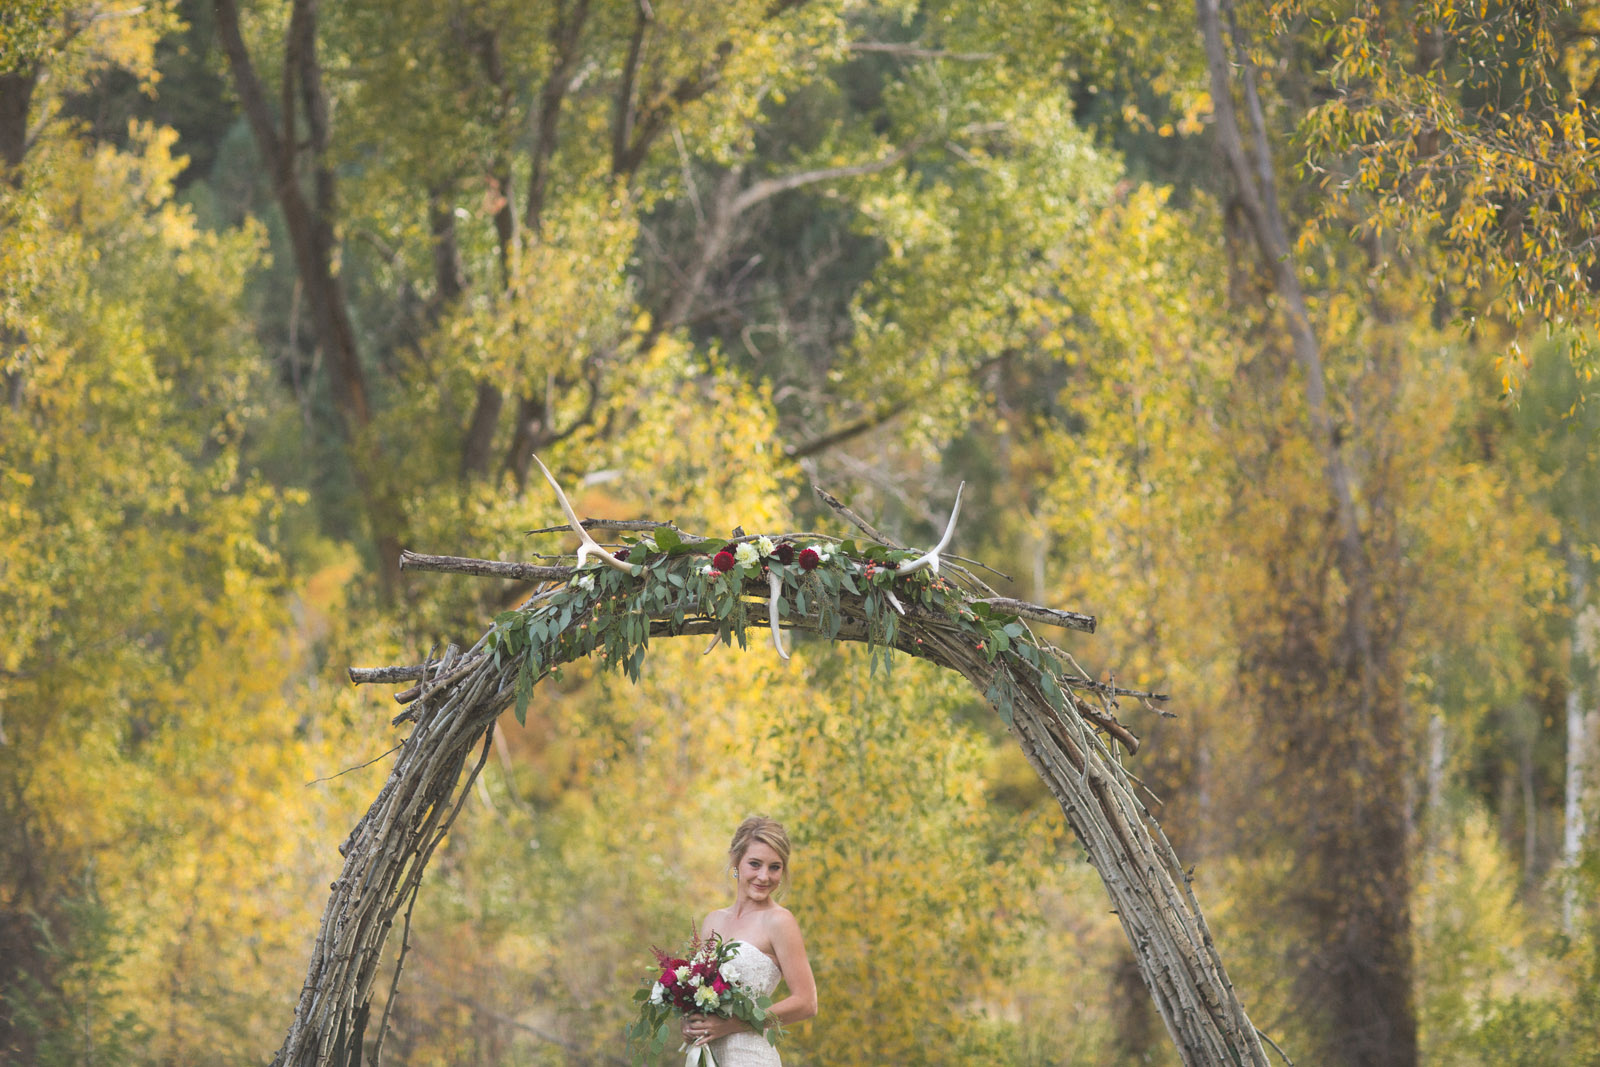 035-beautiful-portrait-of-bride-in-dress-in-nature-and-photojournalistic-photography-in-durango-colorado-elopement-wedding